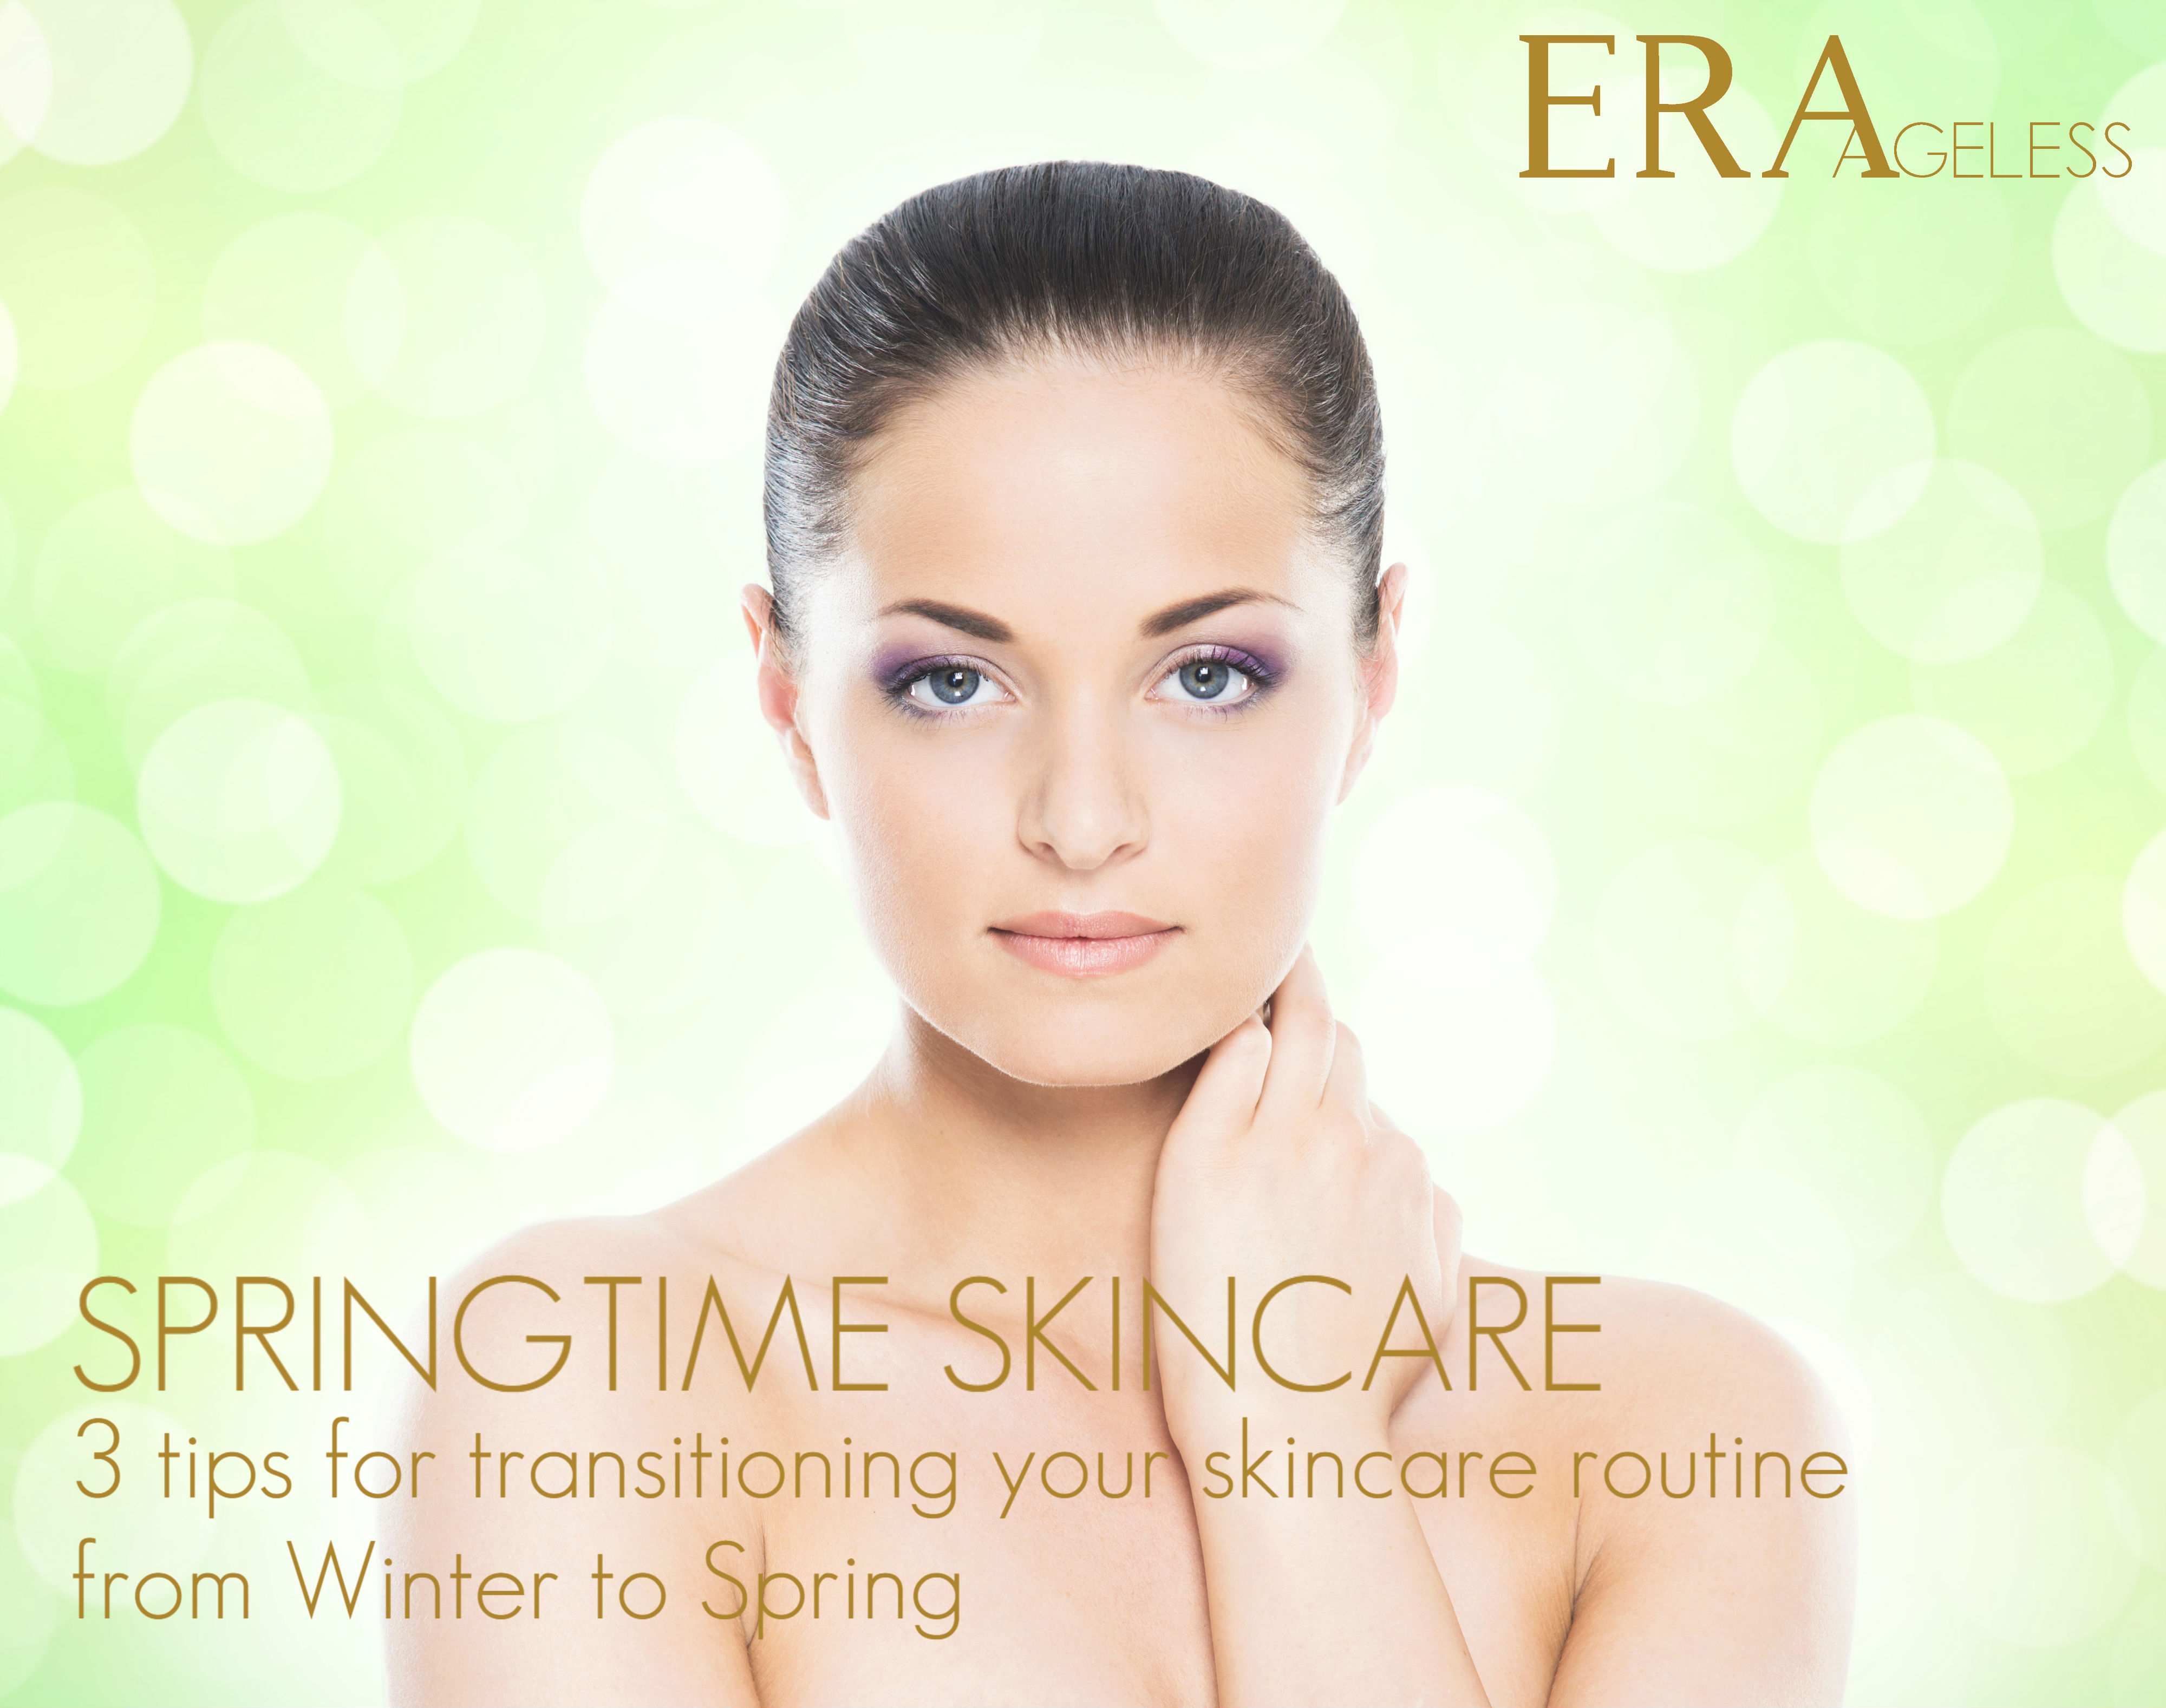 Springtime Skincare: 10 tips for transitioning your skincare